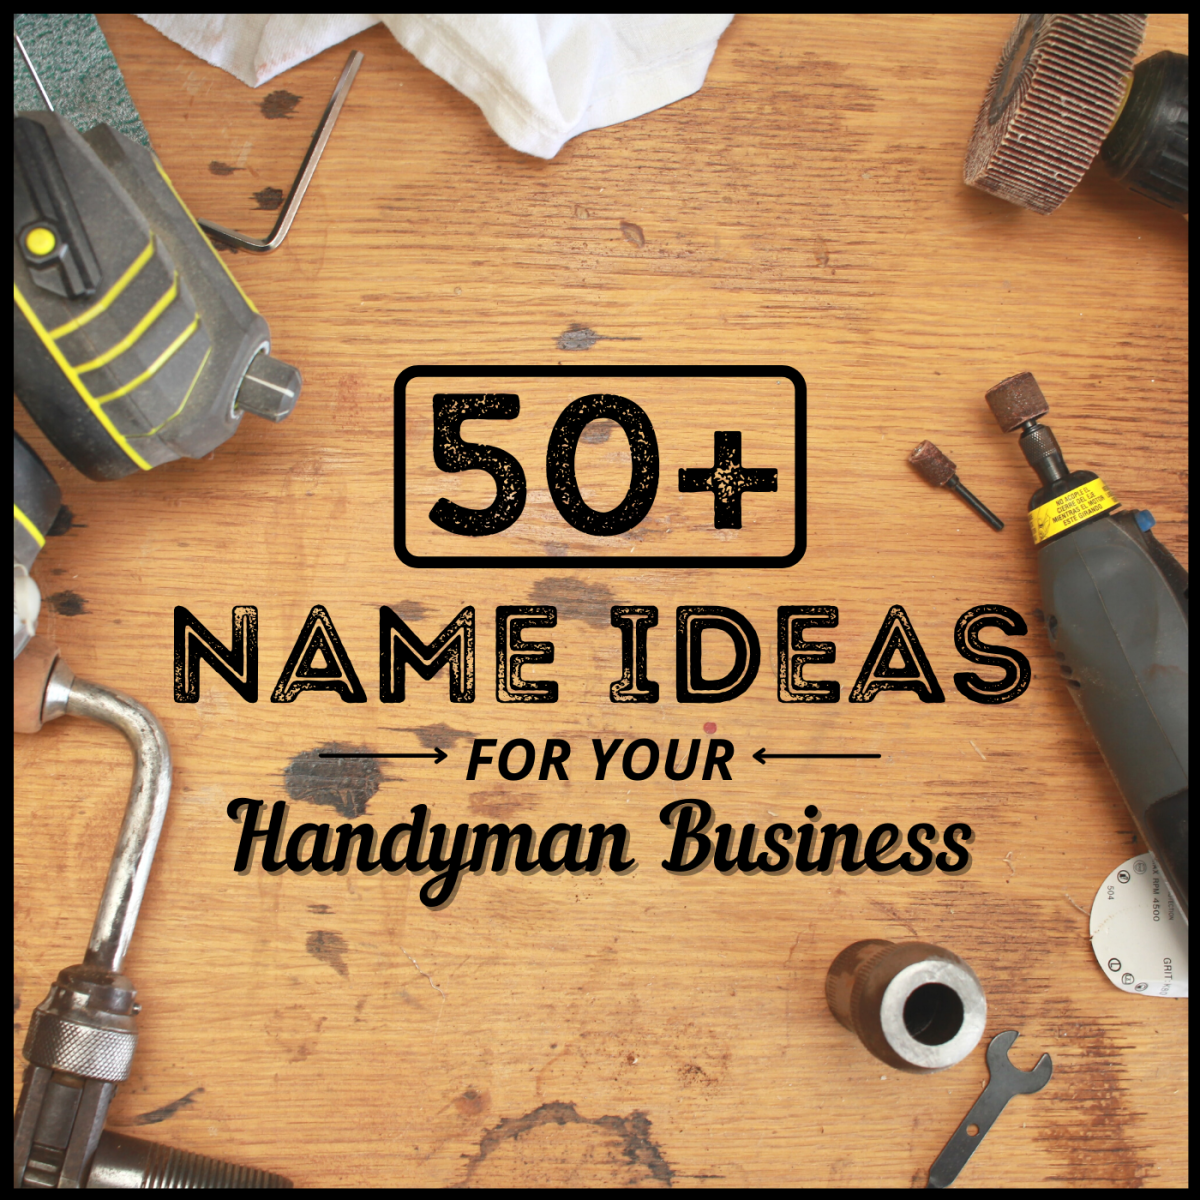 Thinking of going into business as a handyman or jack of all trades? Choosing a name is the first step.